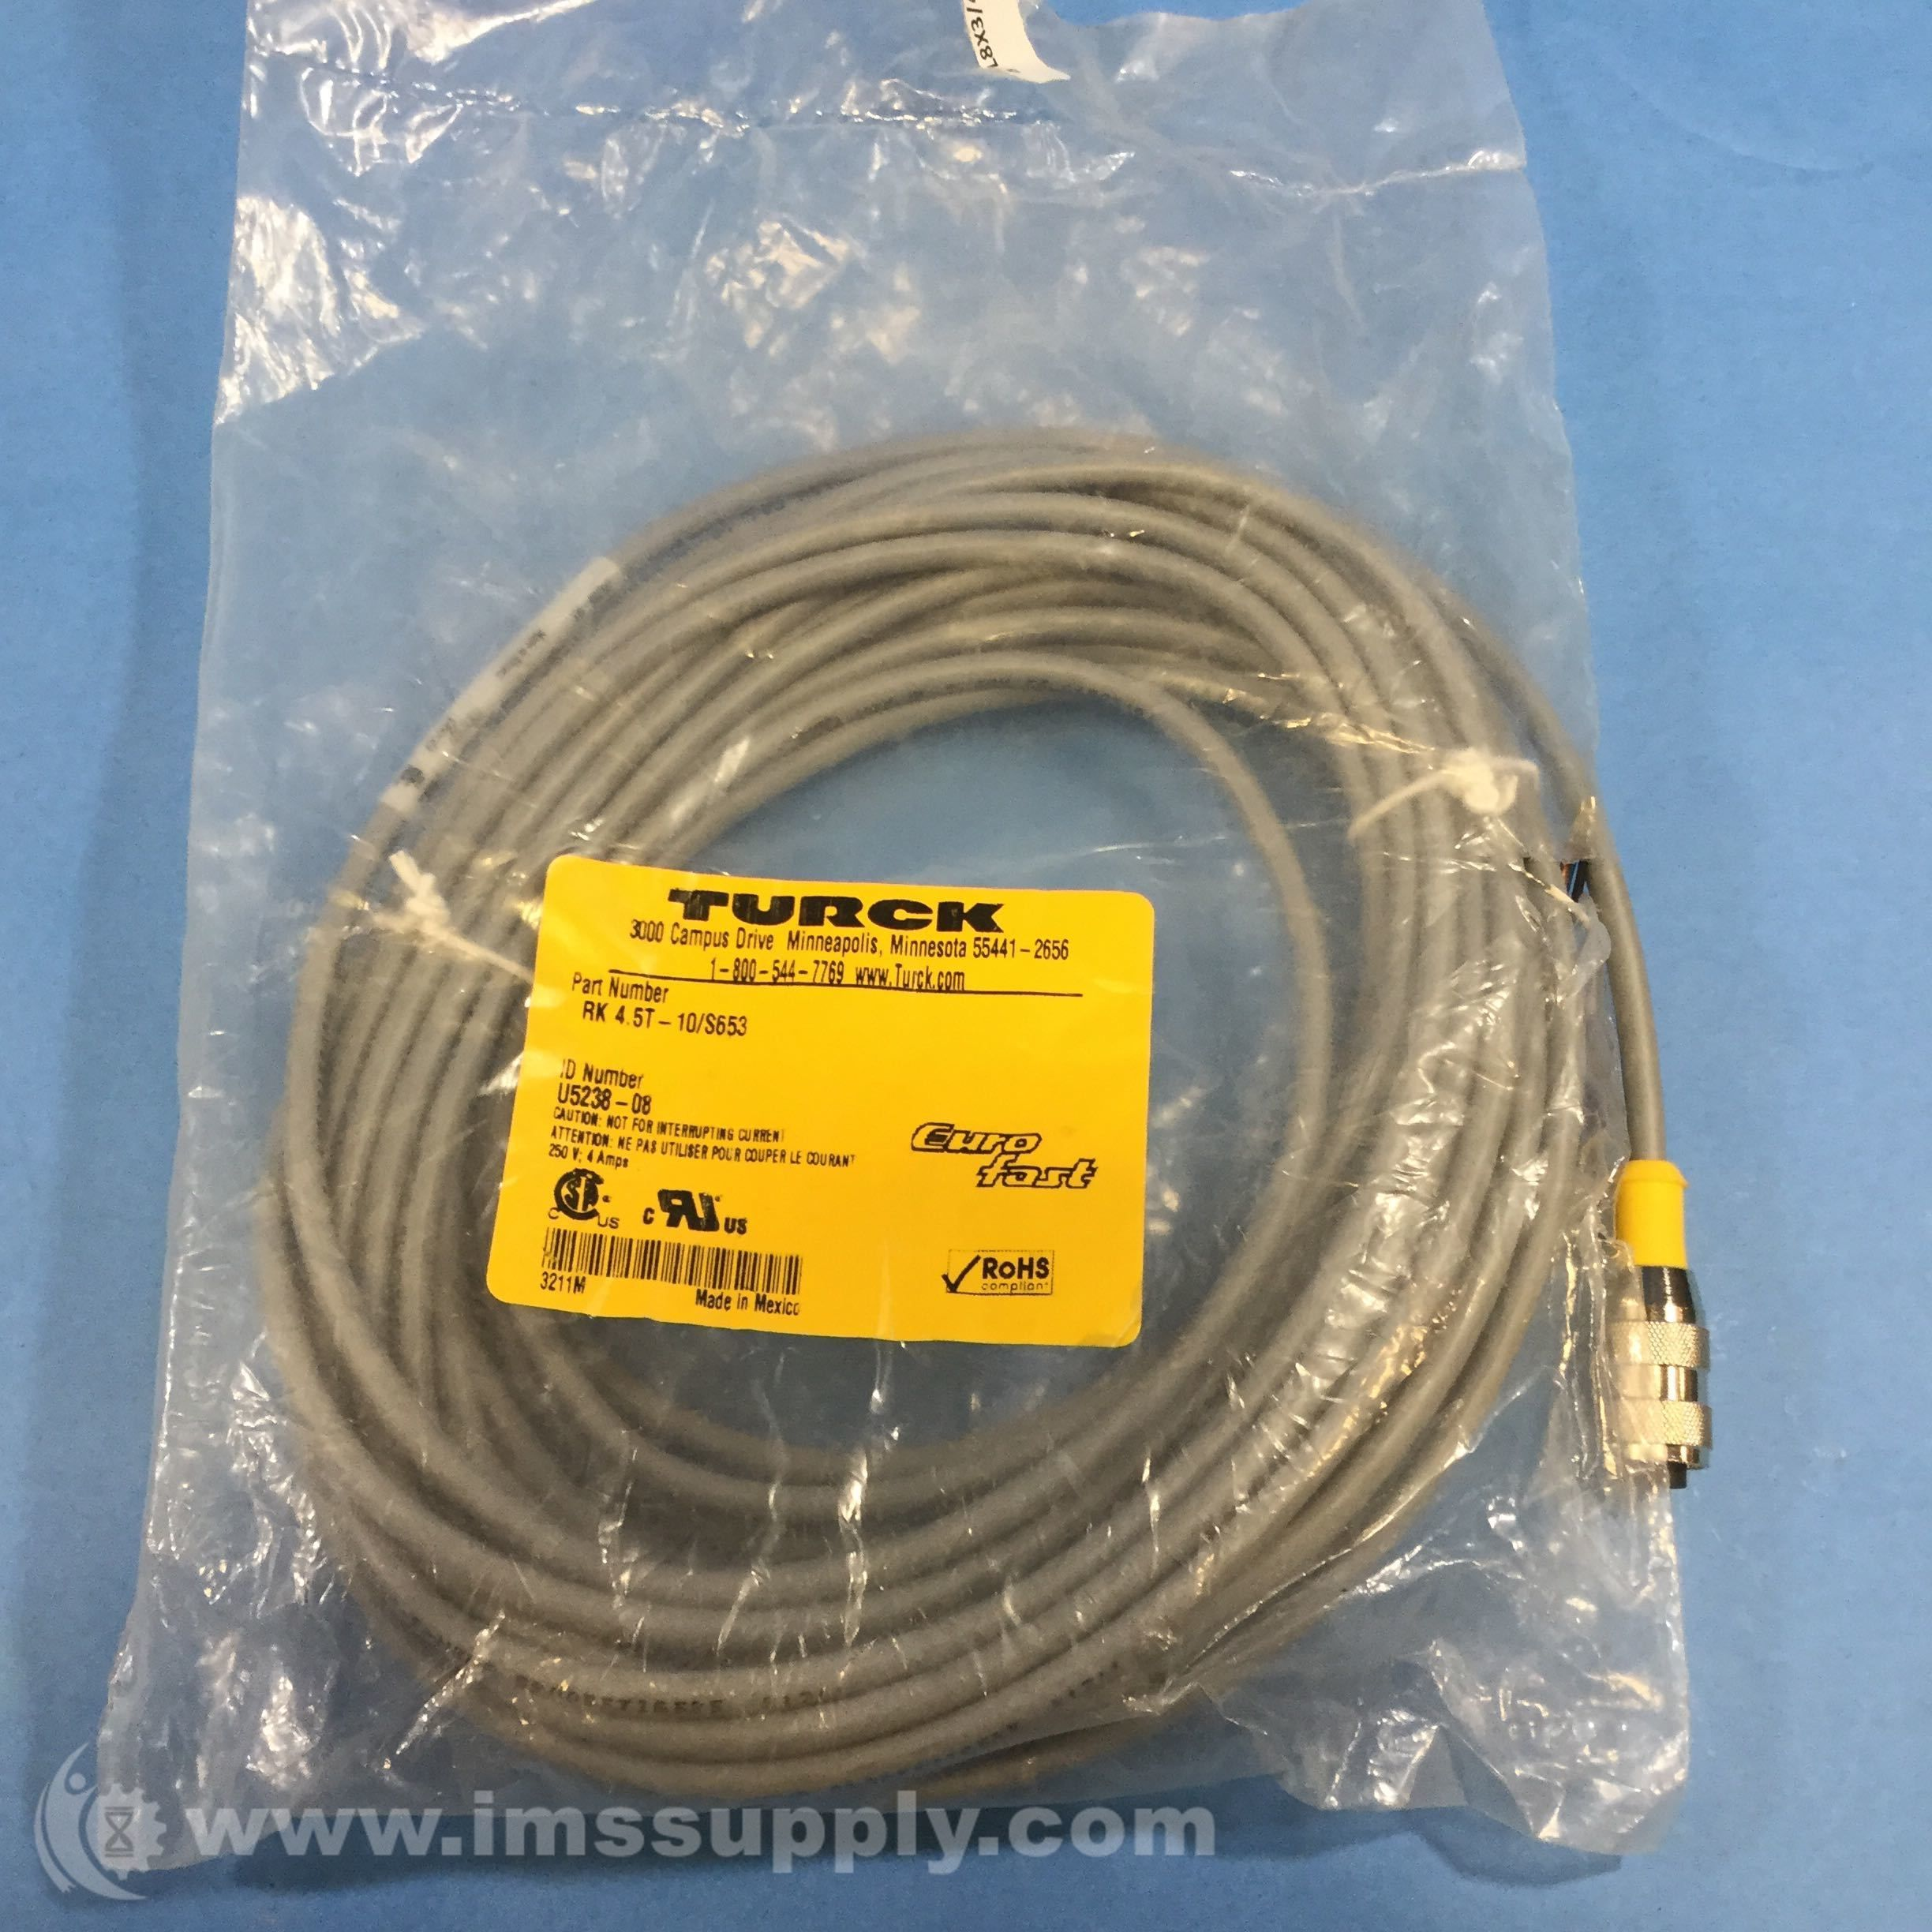 Turck Rk 45t 10 S653 M12 Eurofast Cordset Straight Female Great Wiring Harness